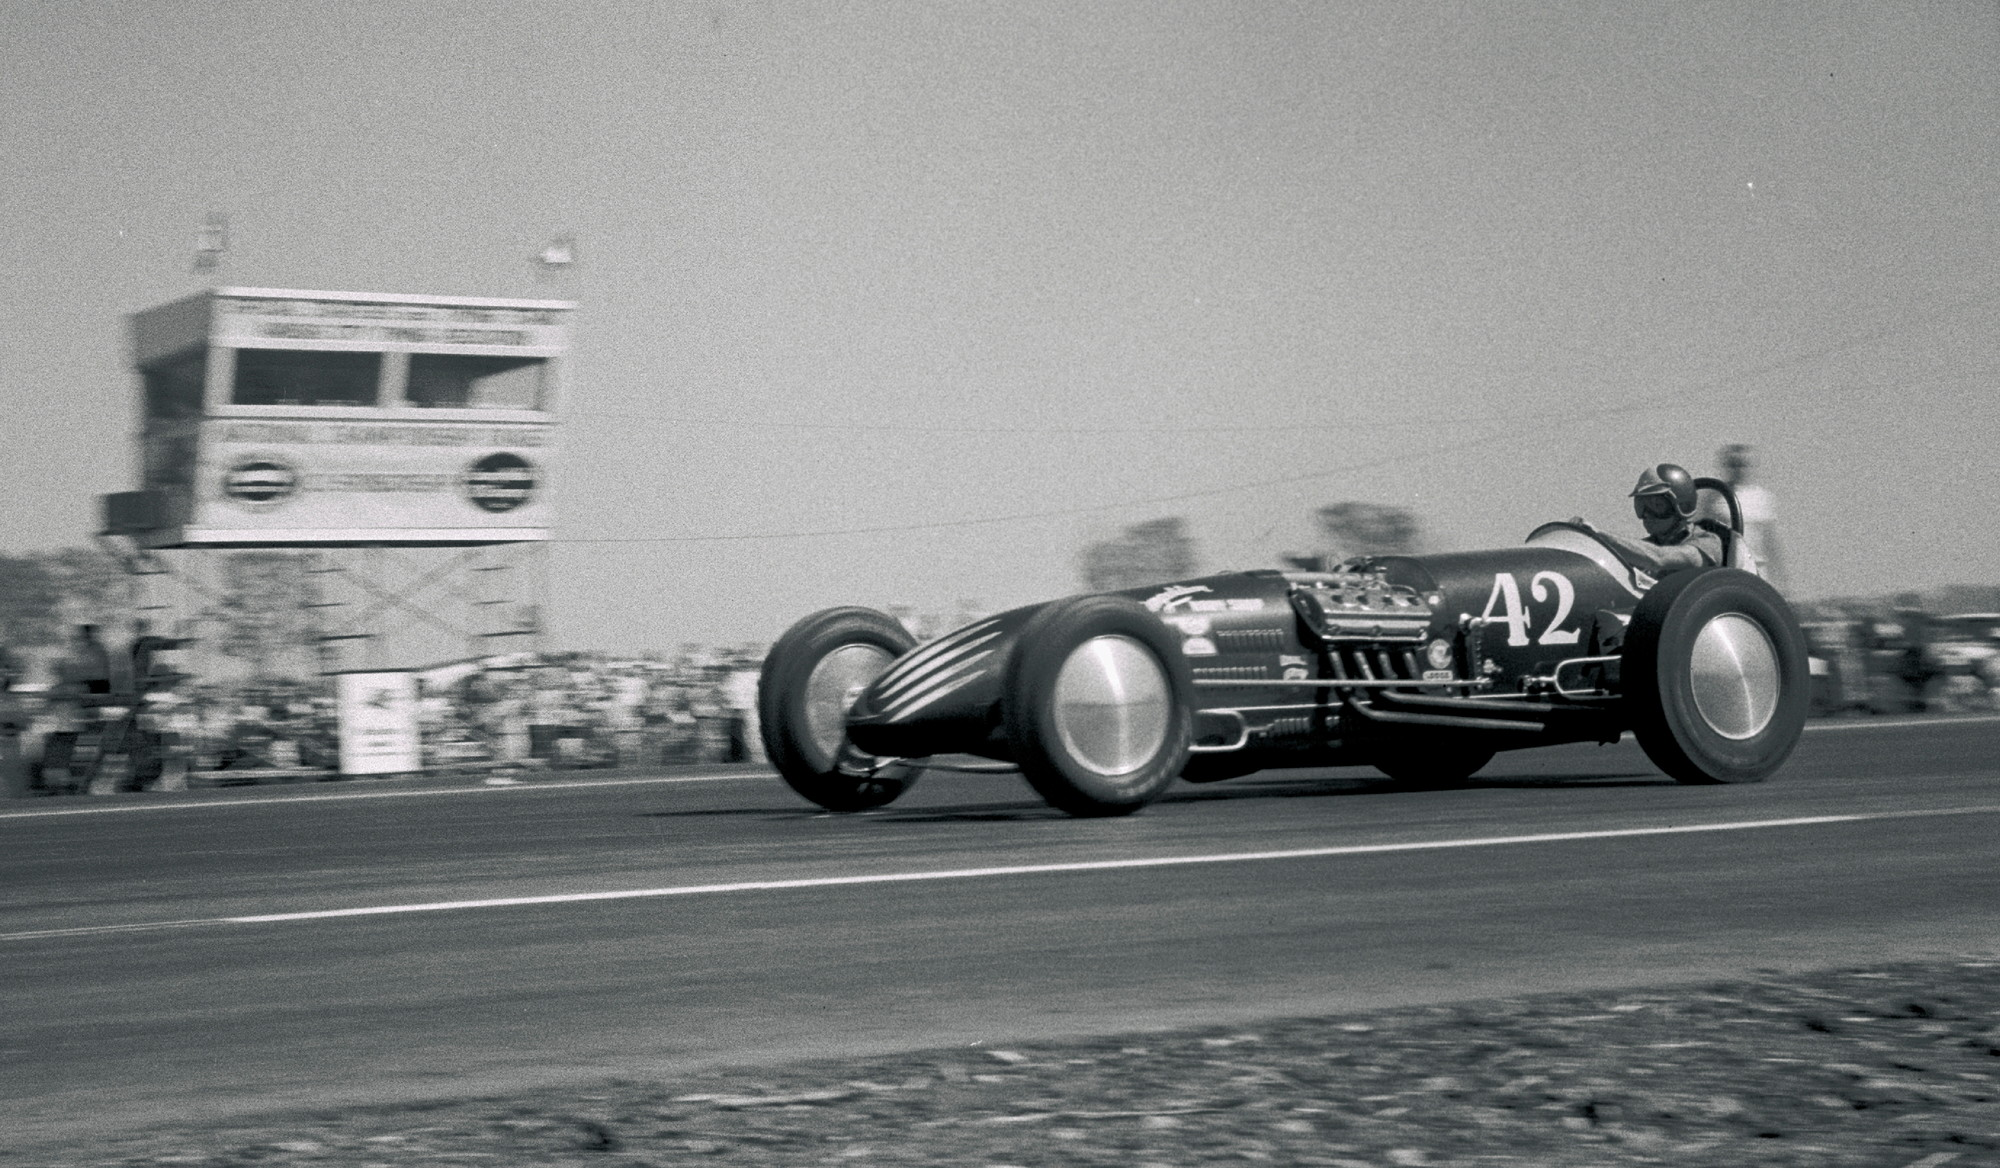 """NHRA moved its national event to Kansas City after losing Great Bend to the feisty American Hot Rod Association. Bob Alsenz drove Ken Lindley's Potvin-blown """"Miss-Fire II"""" to the meet's top speed and a new world record of 159.01, but lost the Top Eliminator final to Mel Heath. The L.A.-based fueler with Competition Body Shop paint and Von Dutch graphics did earn Motor Trend's Best Engineered Car trophy and a future HRM feature (Jan. '57)."""